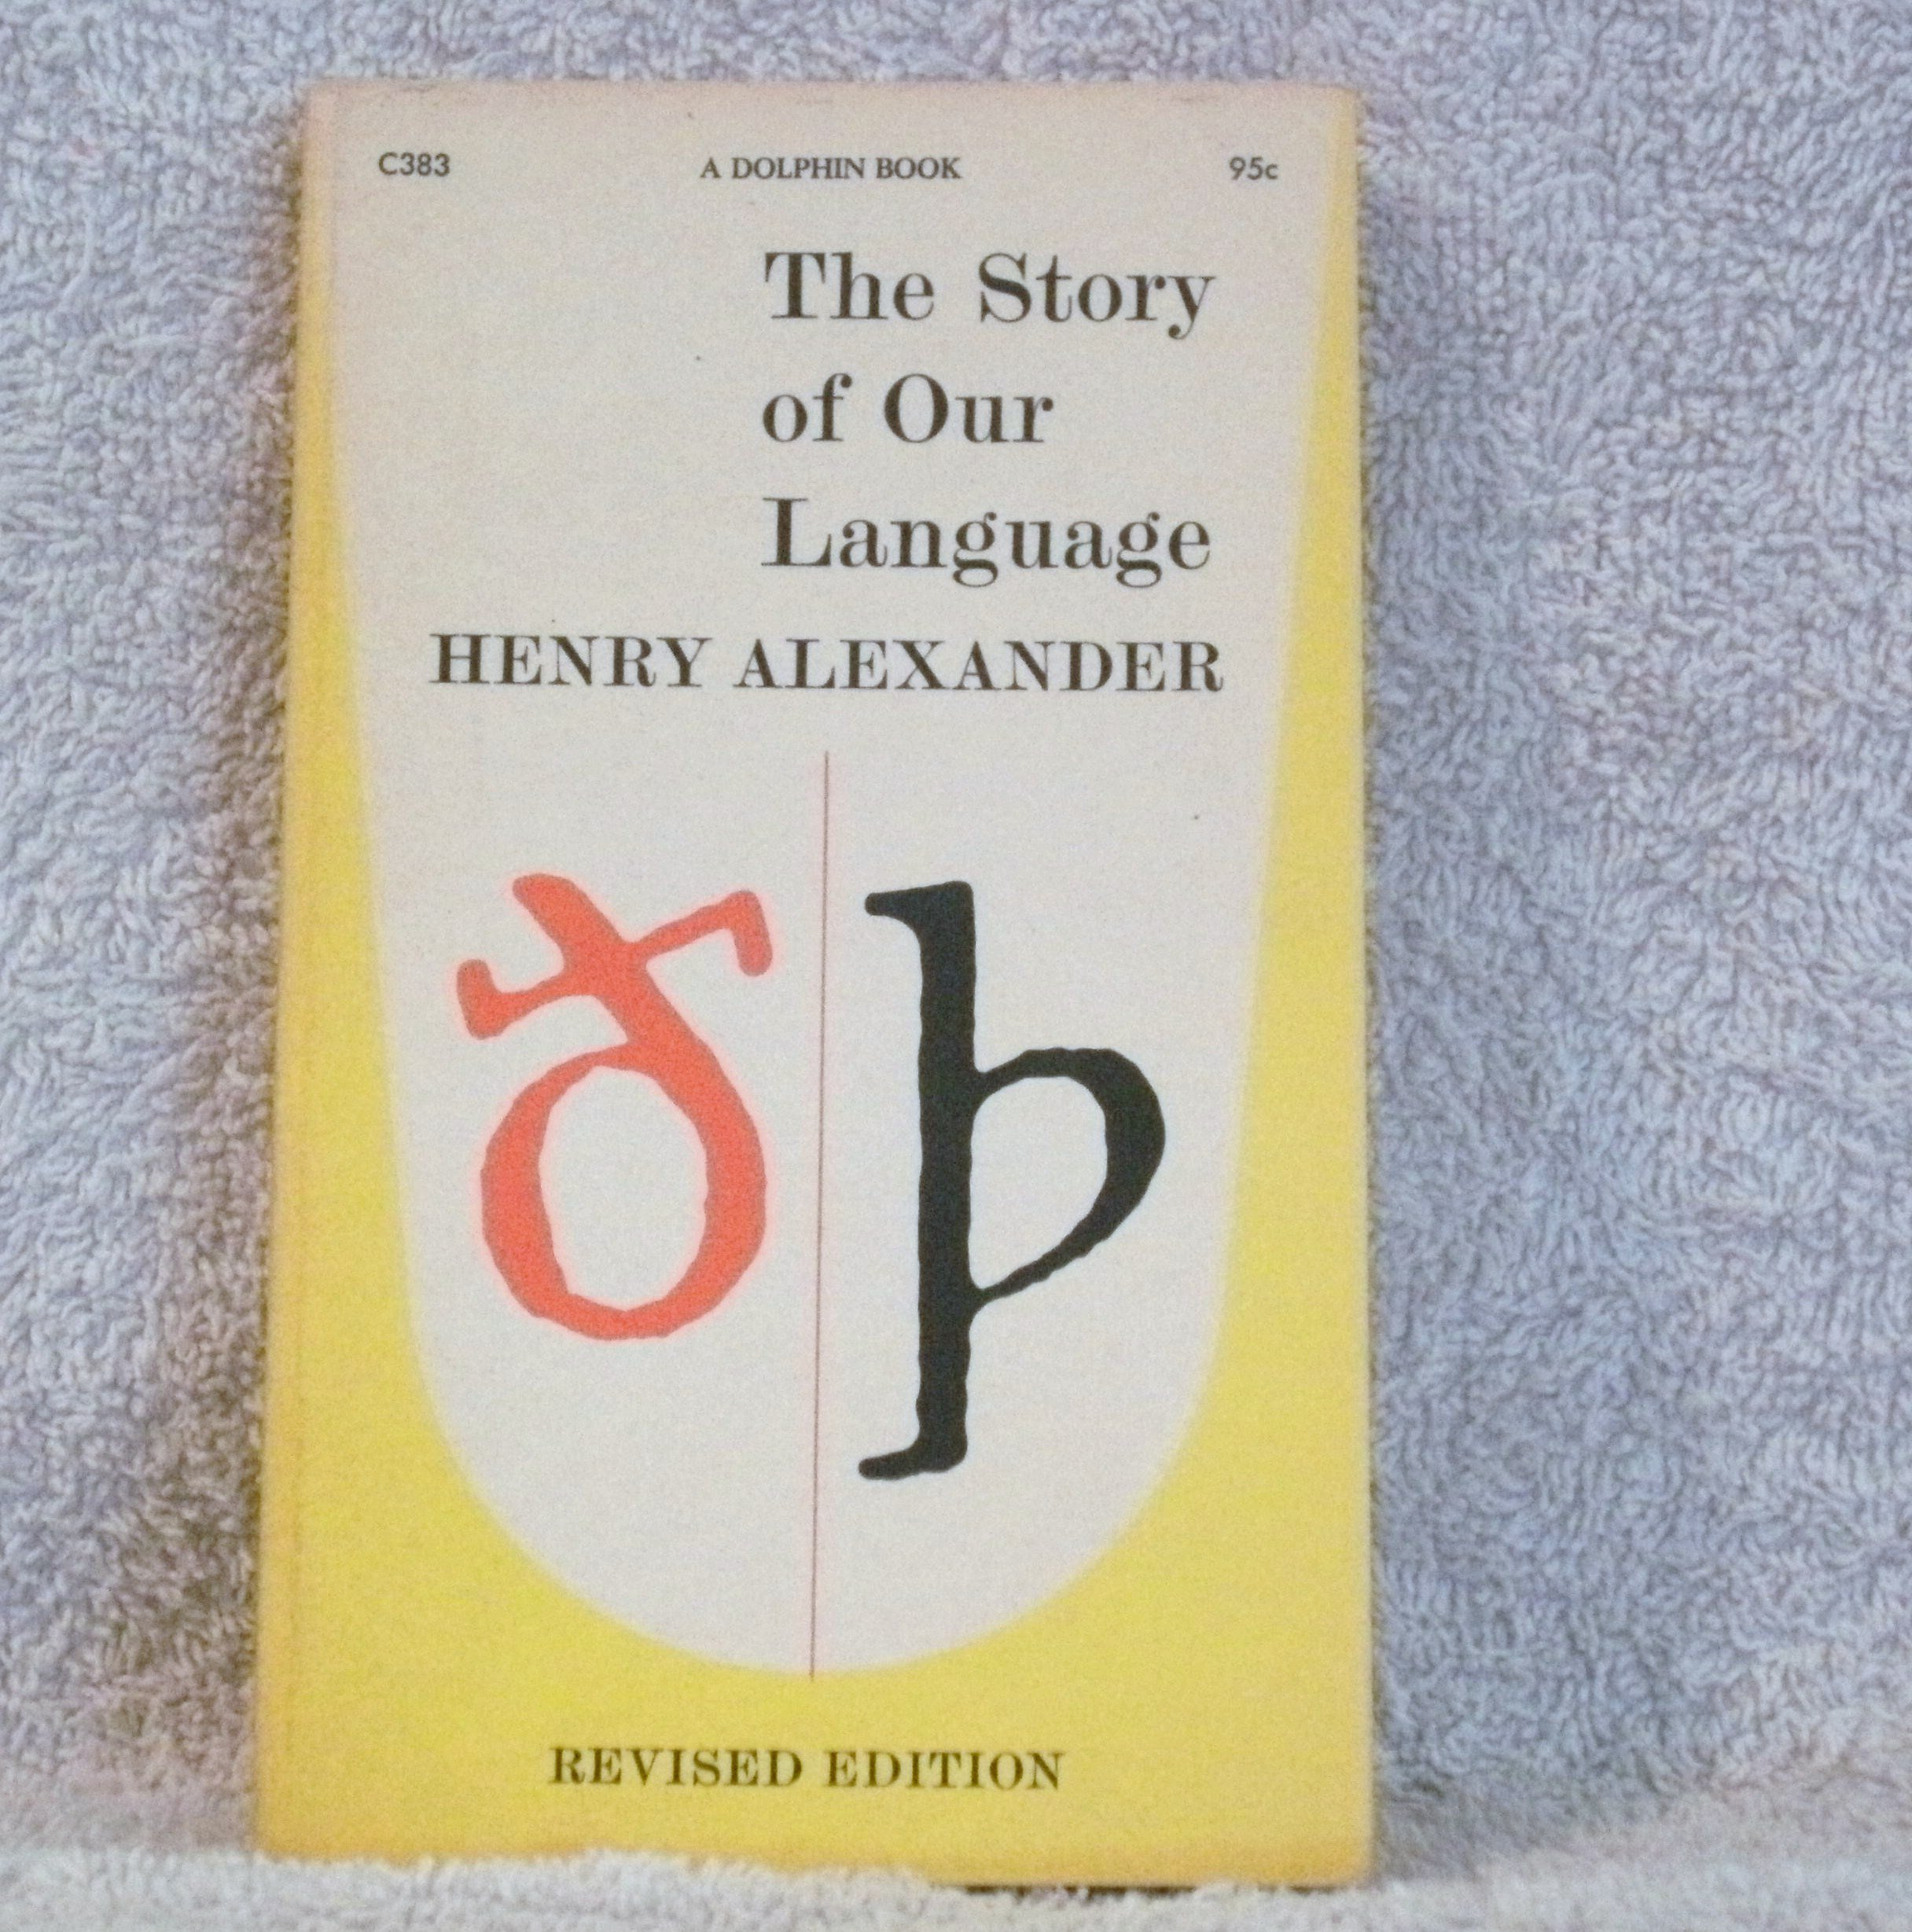 The Story of Our Language, Henry Alexander